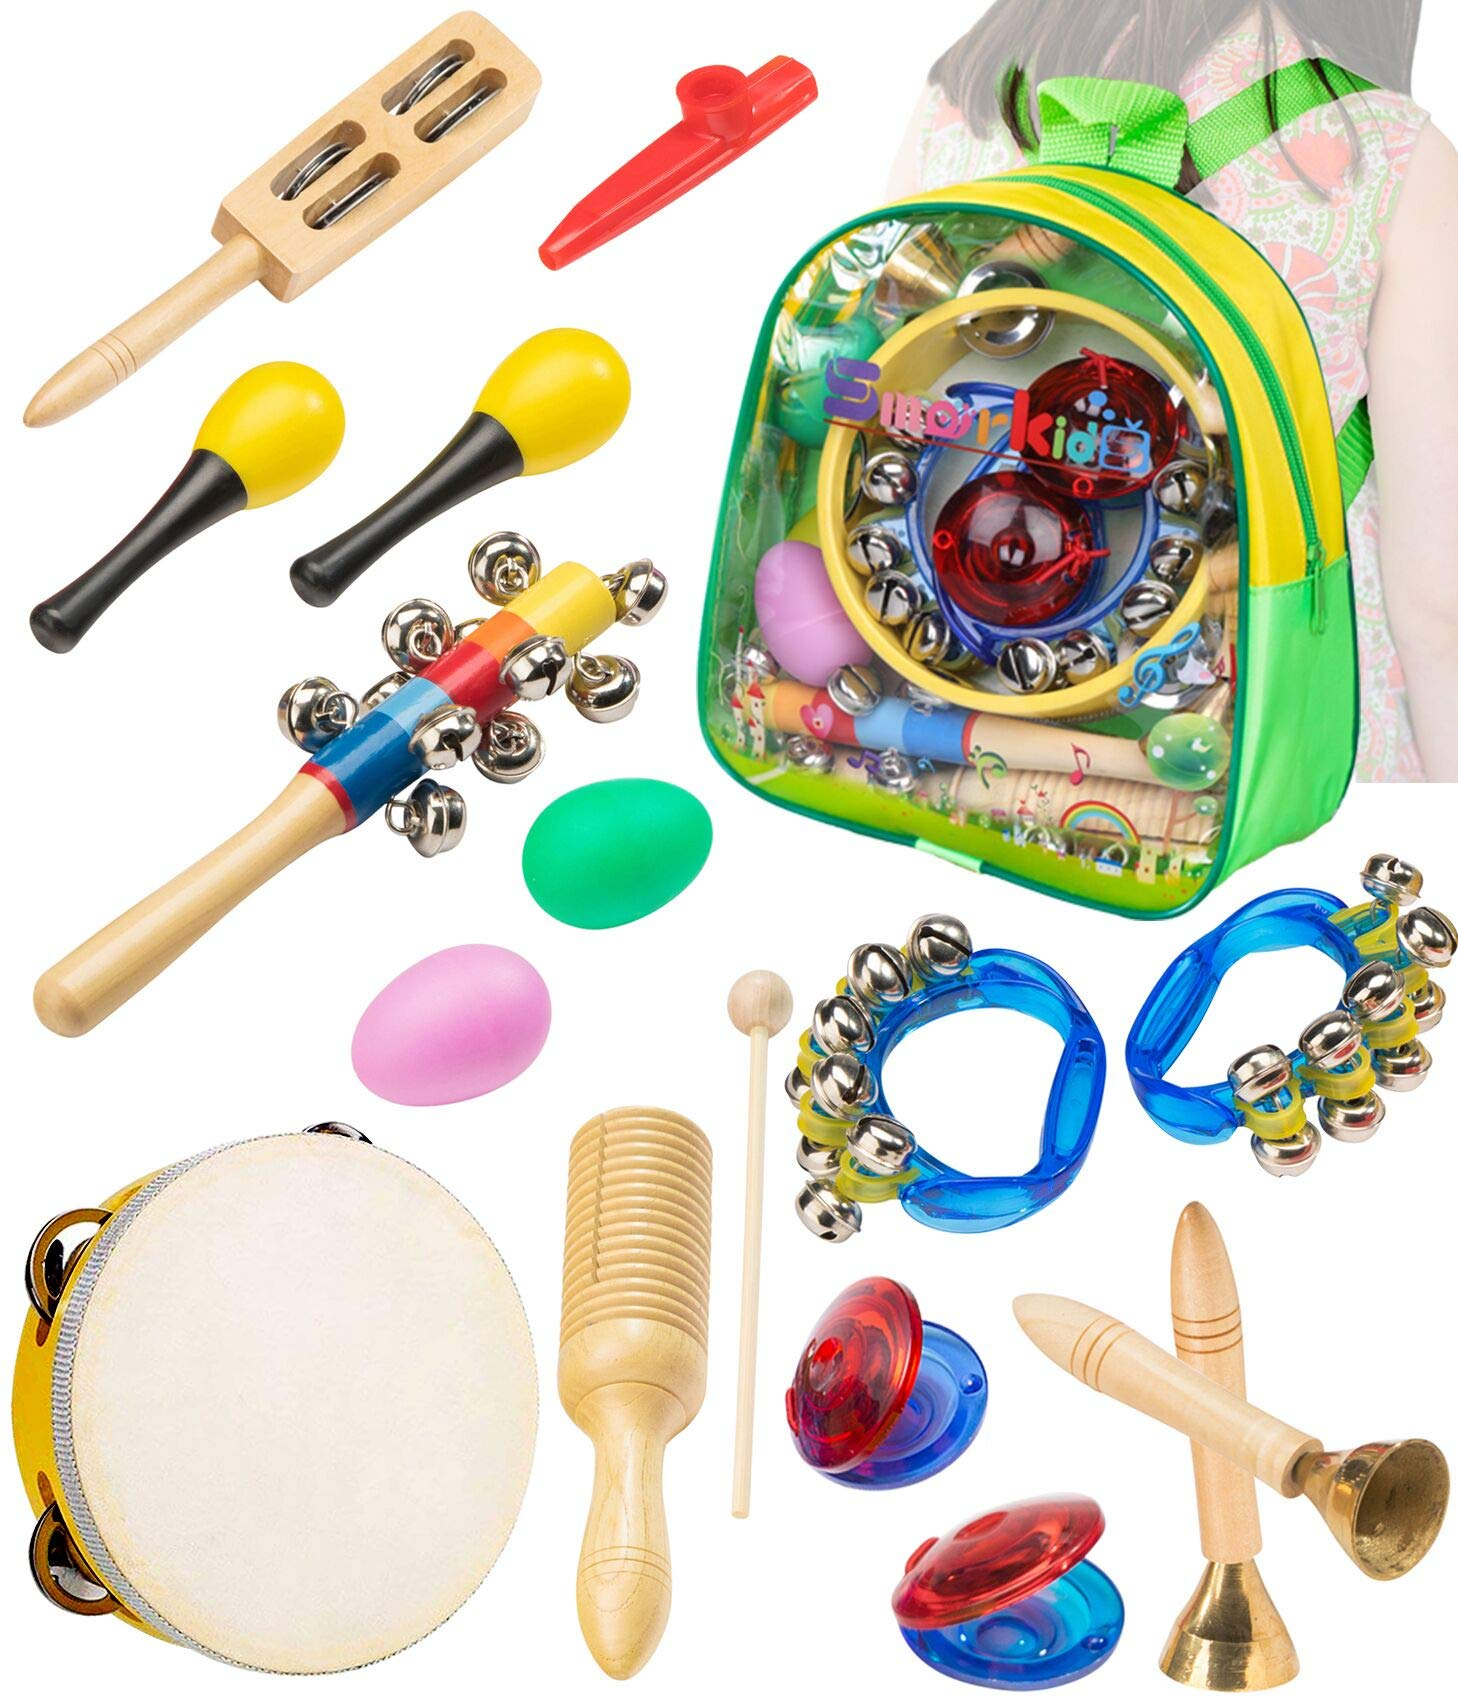 Smarkids Musical Instruments Toddler Toys - Professional Preschool Music Education Toys Percussion Instruments Set Music Early Learning Toys for Boys and Girls with Storage Backpack by Smarkids